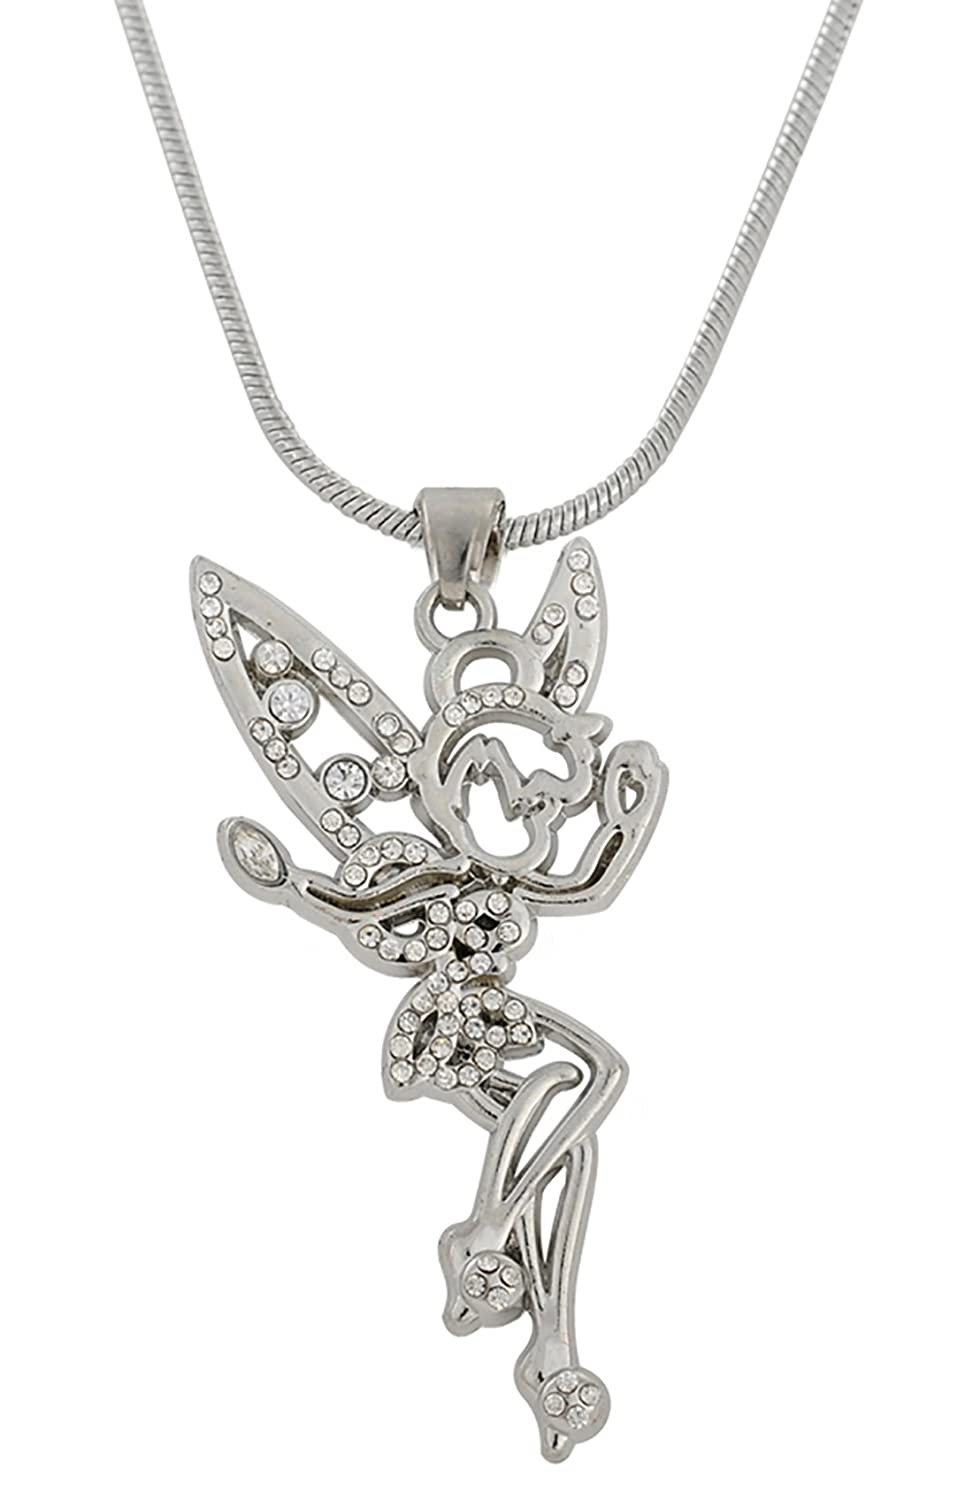 Adorable Tinkerbell Fairy Angel With Crystal Wings Pendant Necklace For Teen Girls&Wowen BiChuang